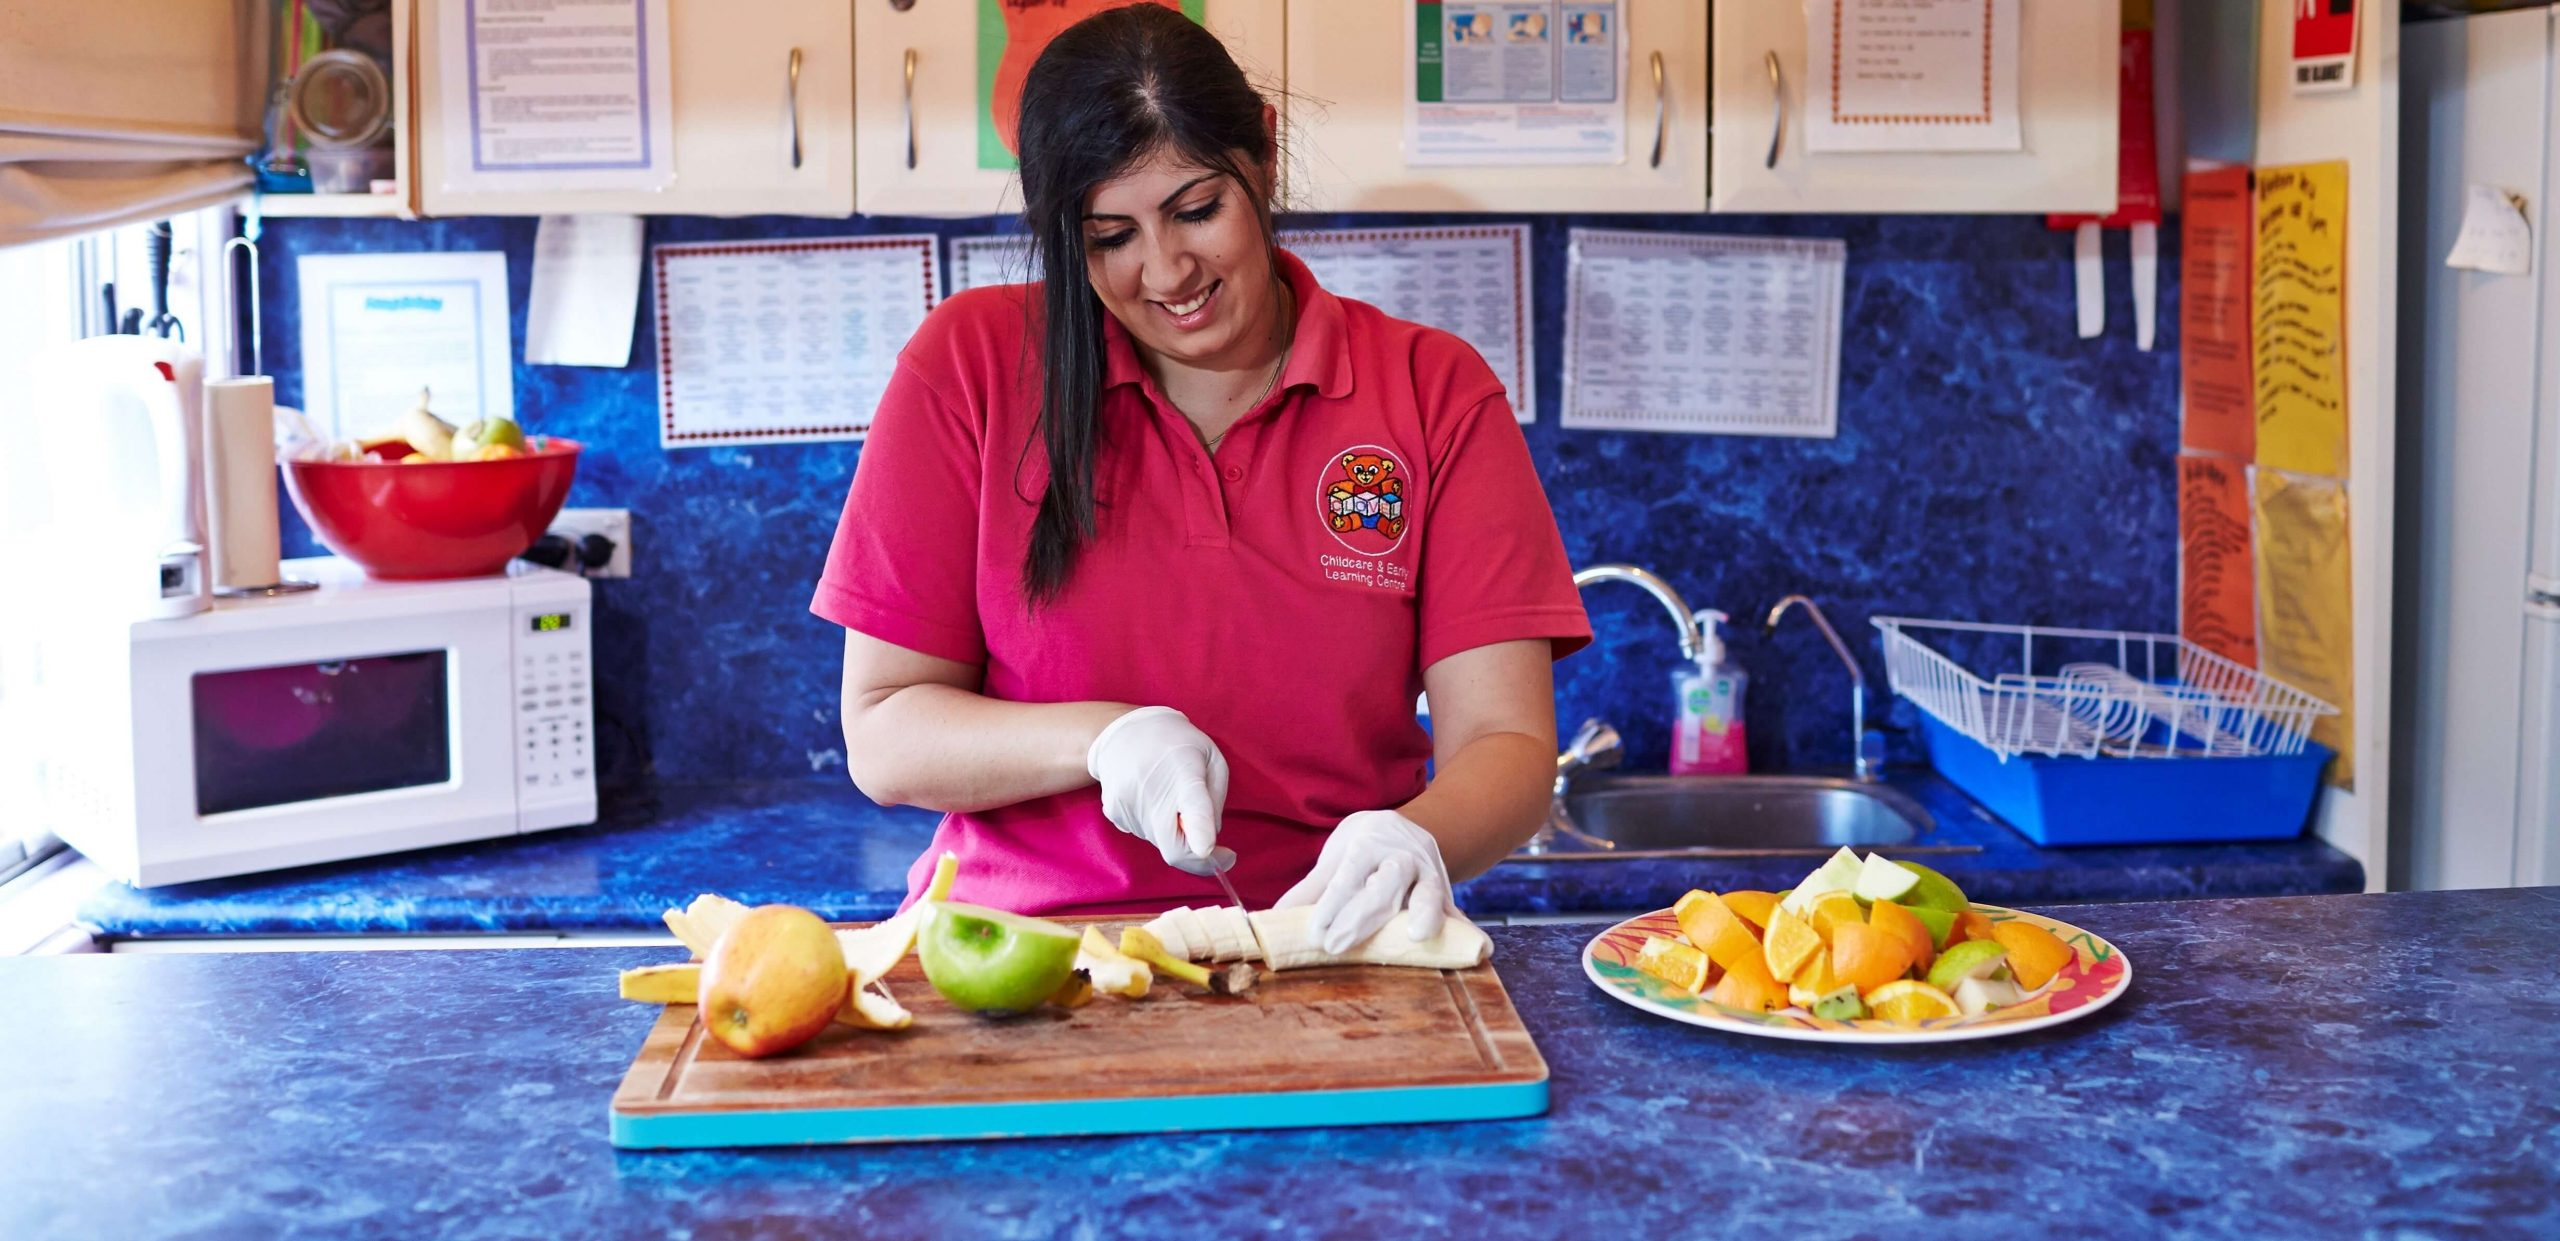 Service cook chops fruit